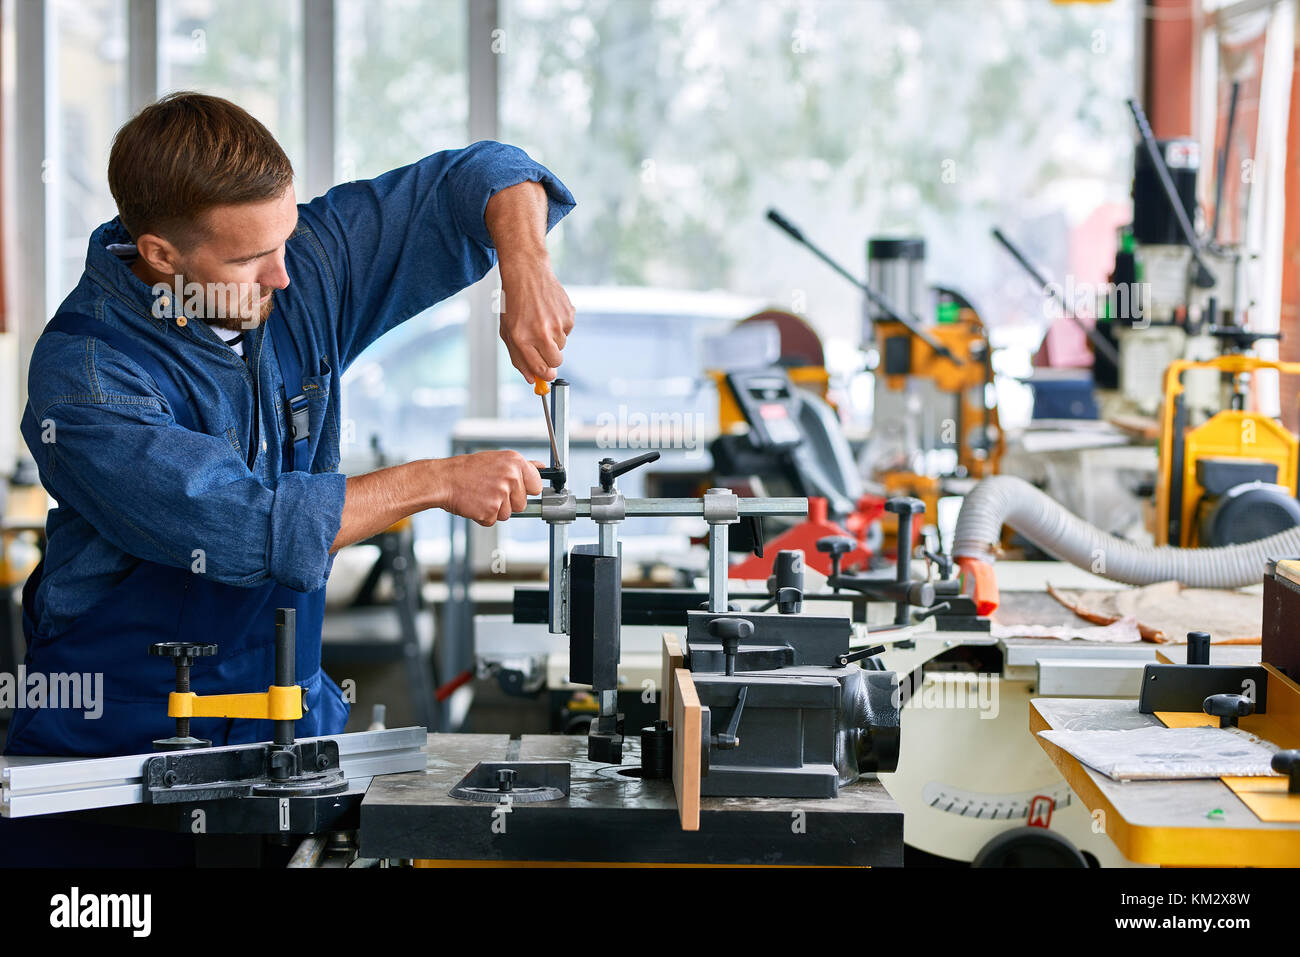 Man Repairing Machines at Factory - Stock Image